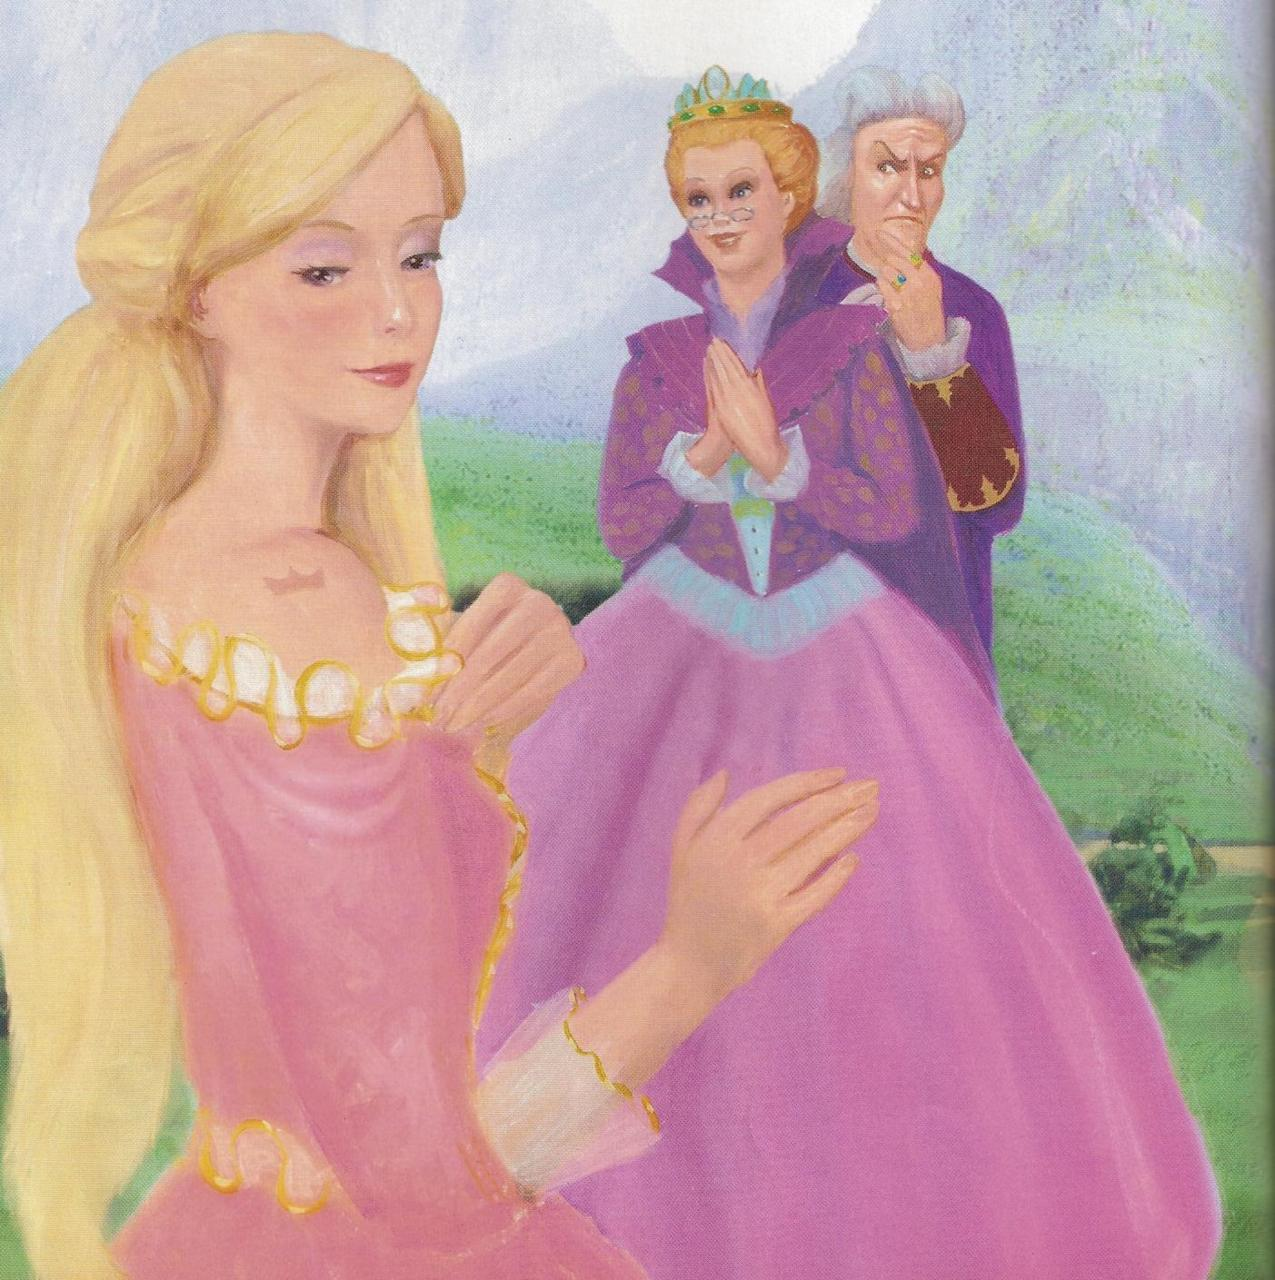 Image Barbie As The Princess And The Pauper Book